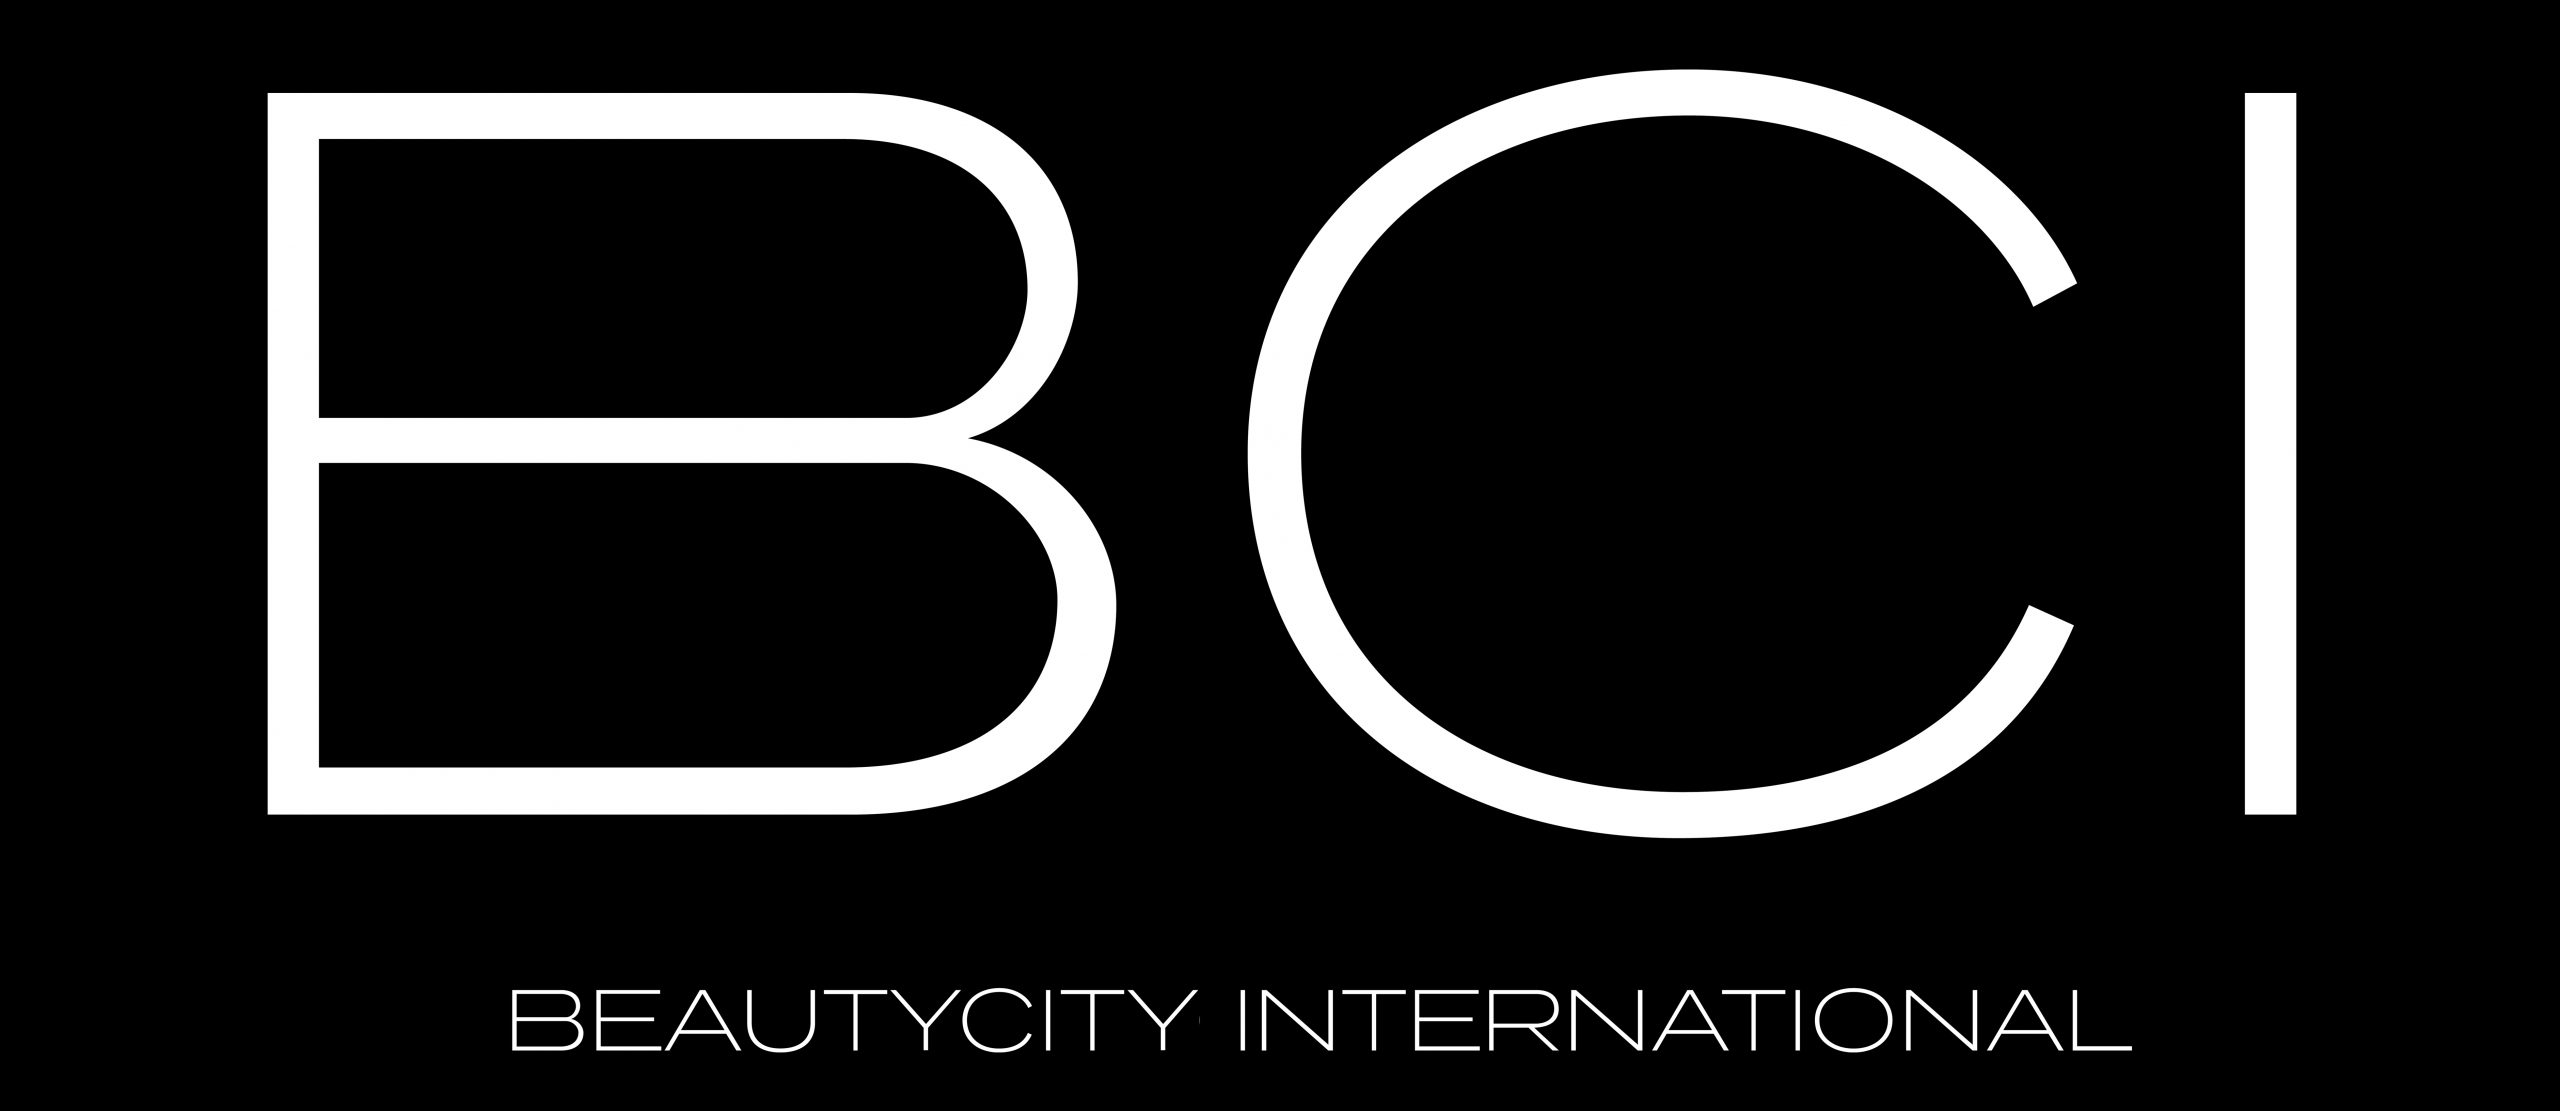 Beauty City International